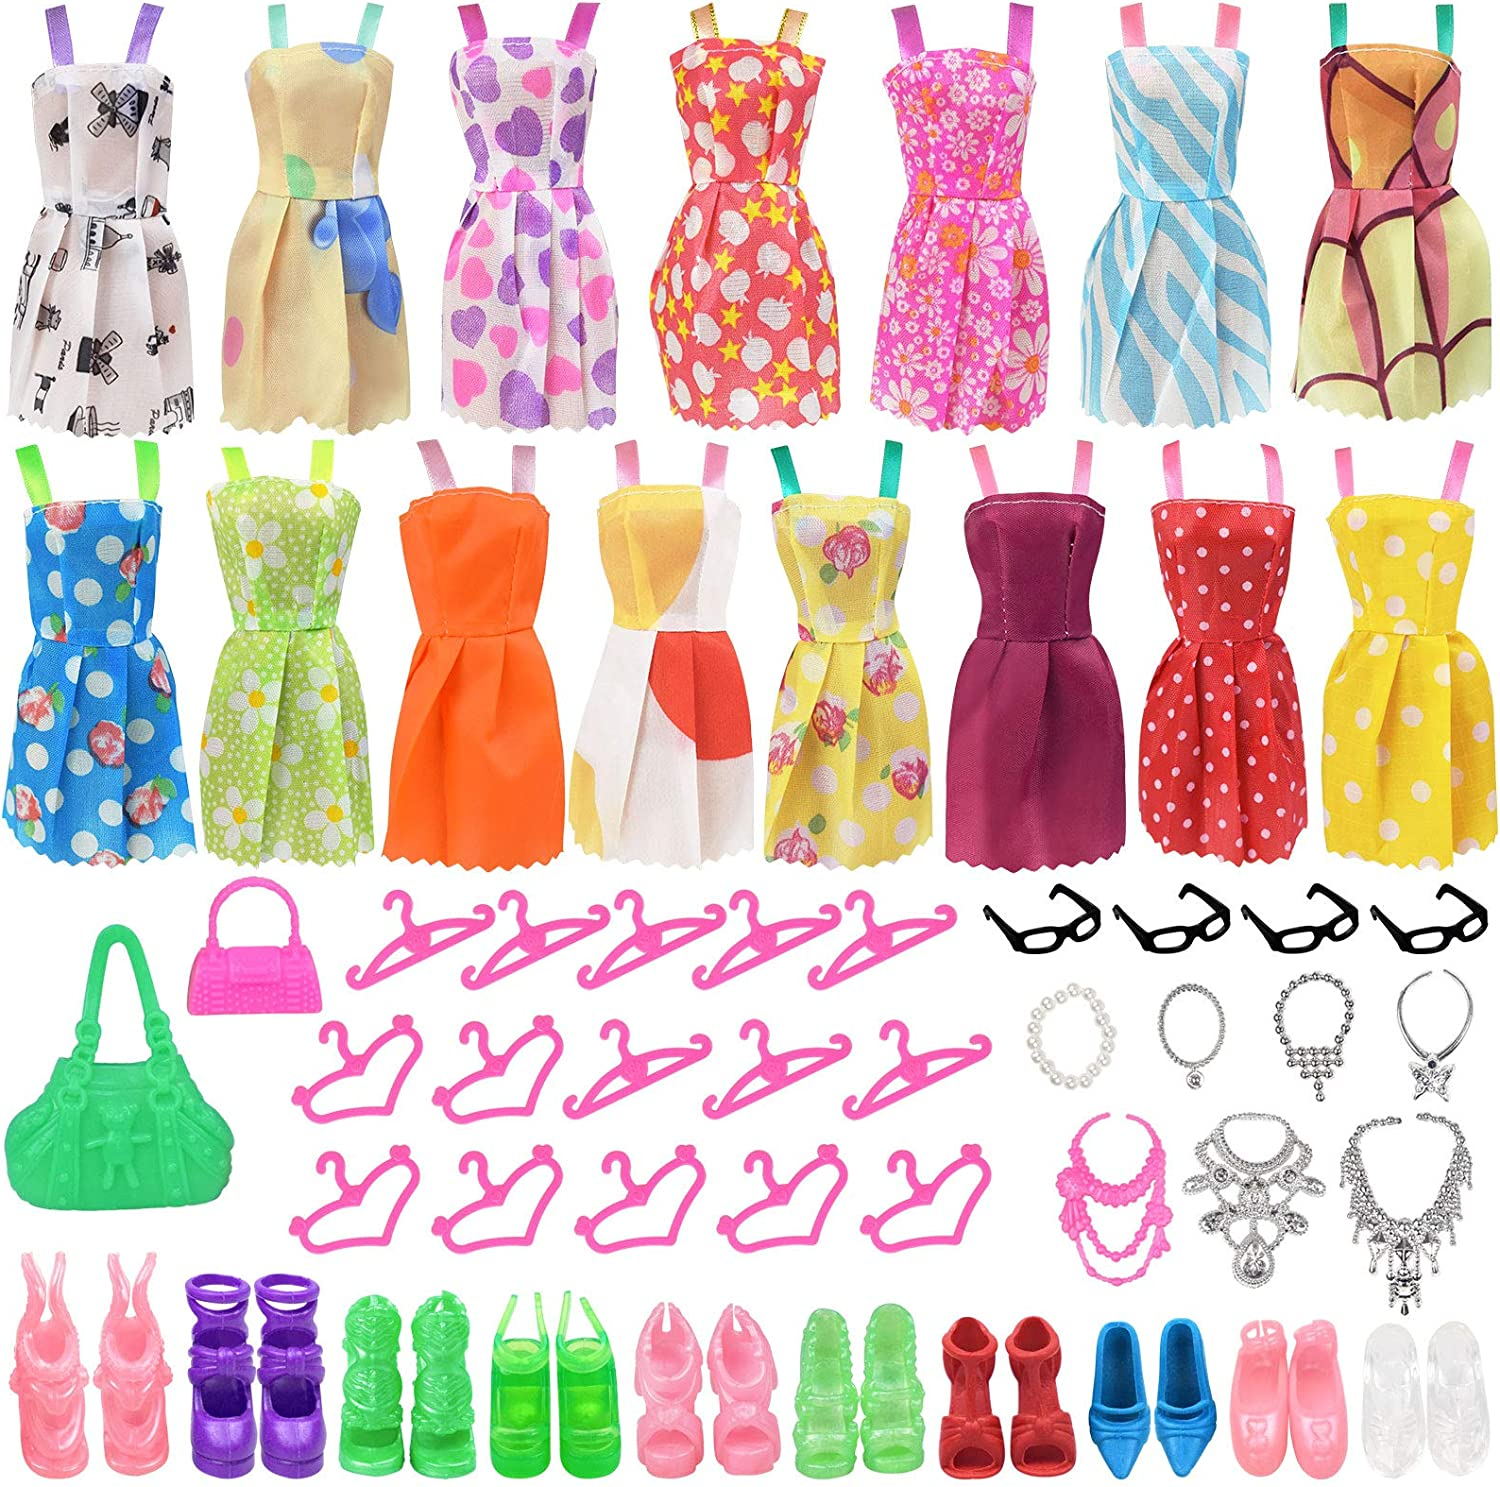 zheyistep Doll Clothes for 11.5 Ranking TOP16 Bargain sale Girl Pcs 53 Inch Acces